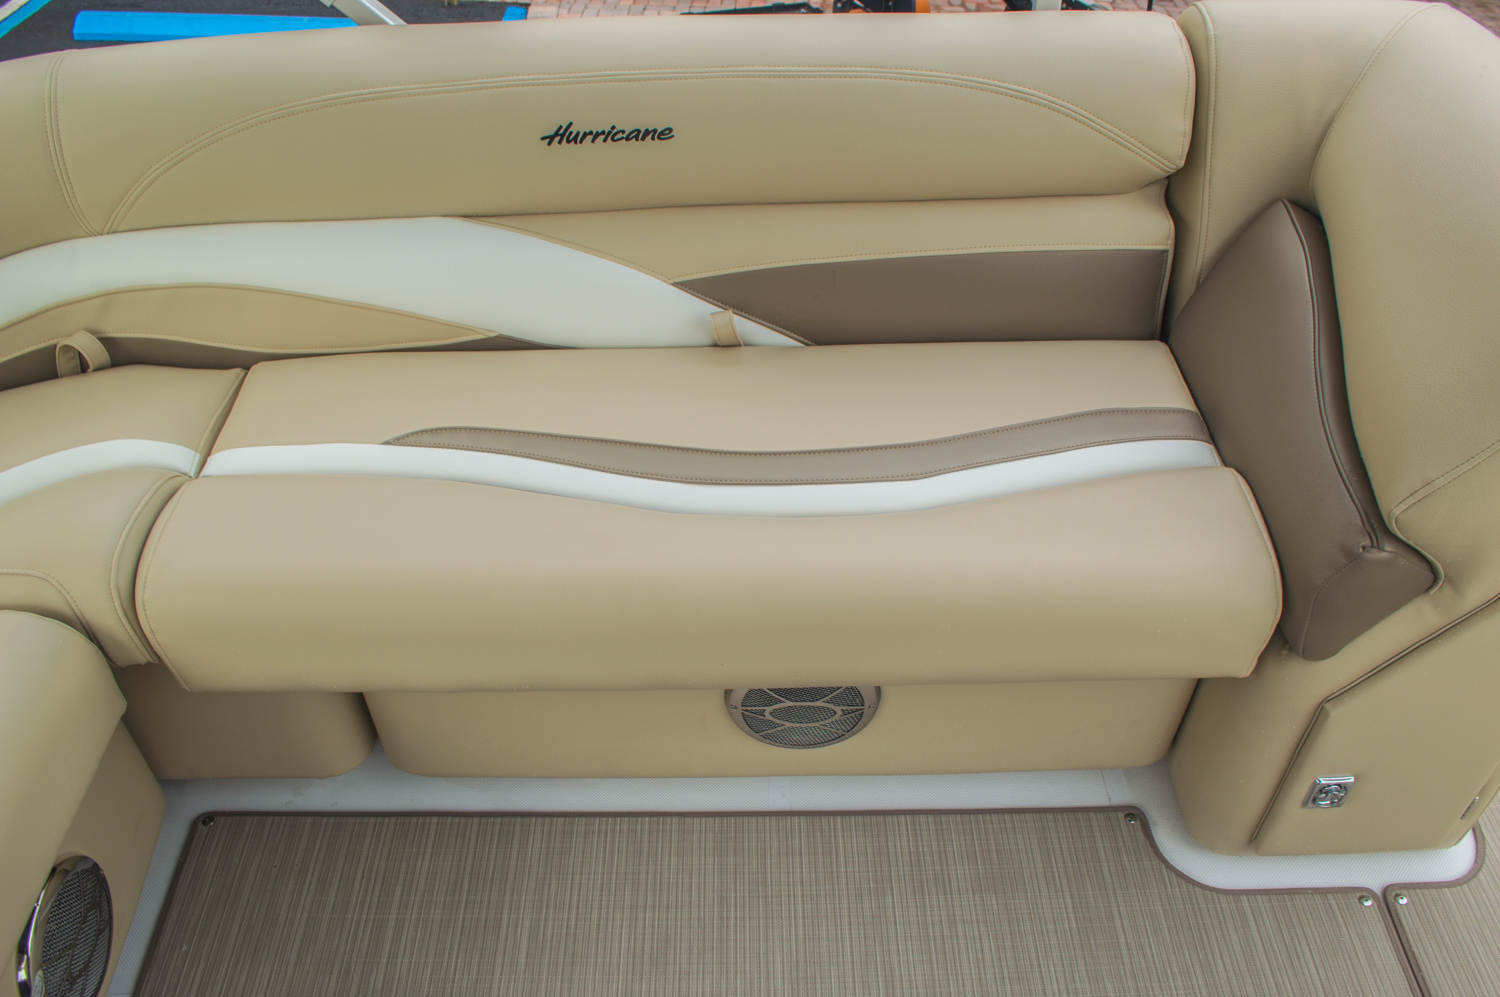 Thumbnail 24 for New 2016 Hurricane FunDeck FD 236 OB boat for sale in Miami, FL